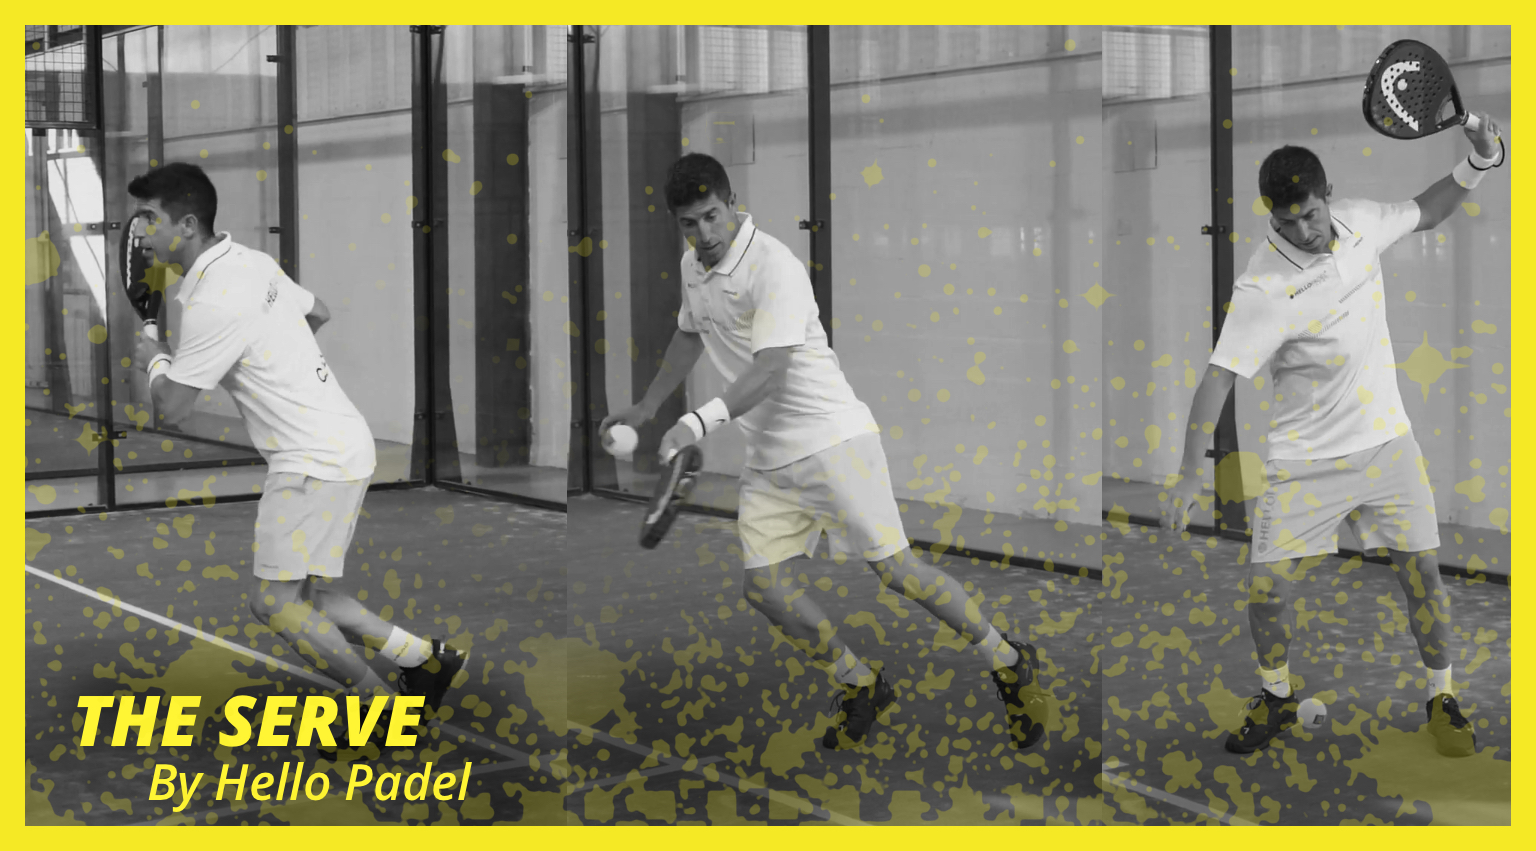 The serve in Padel